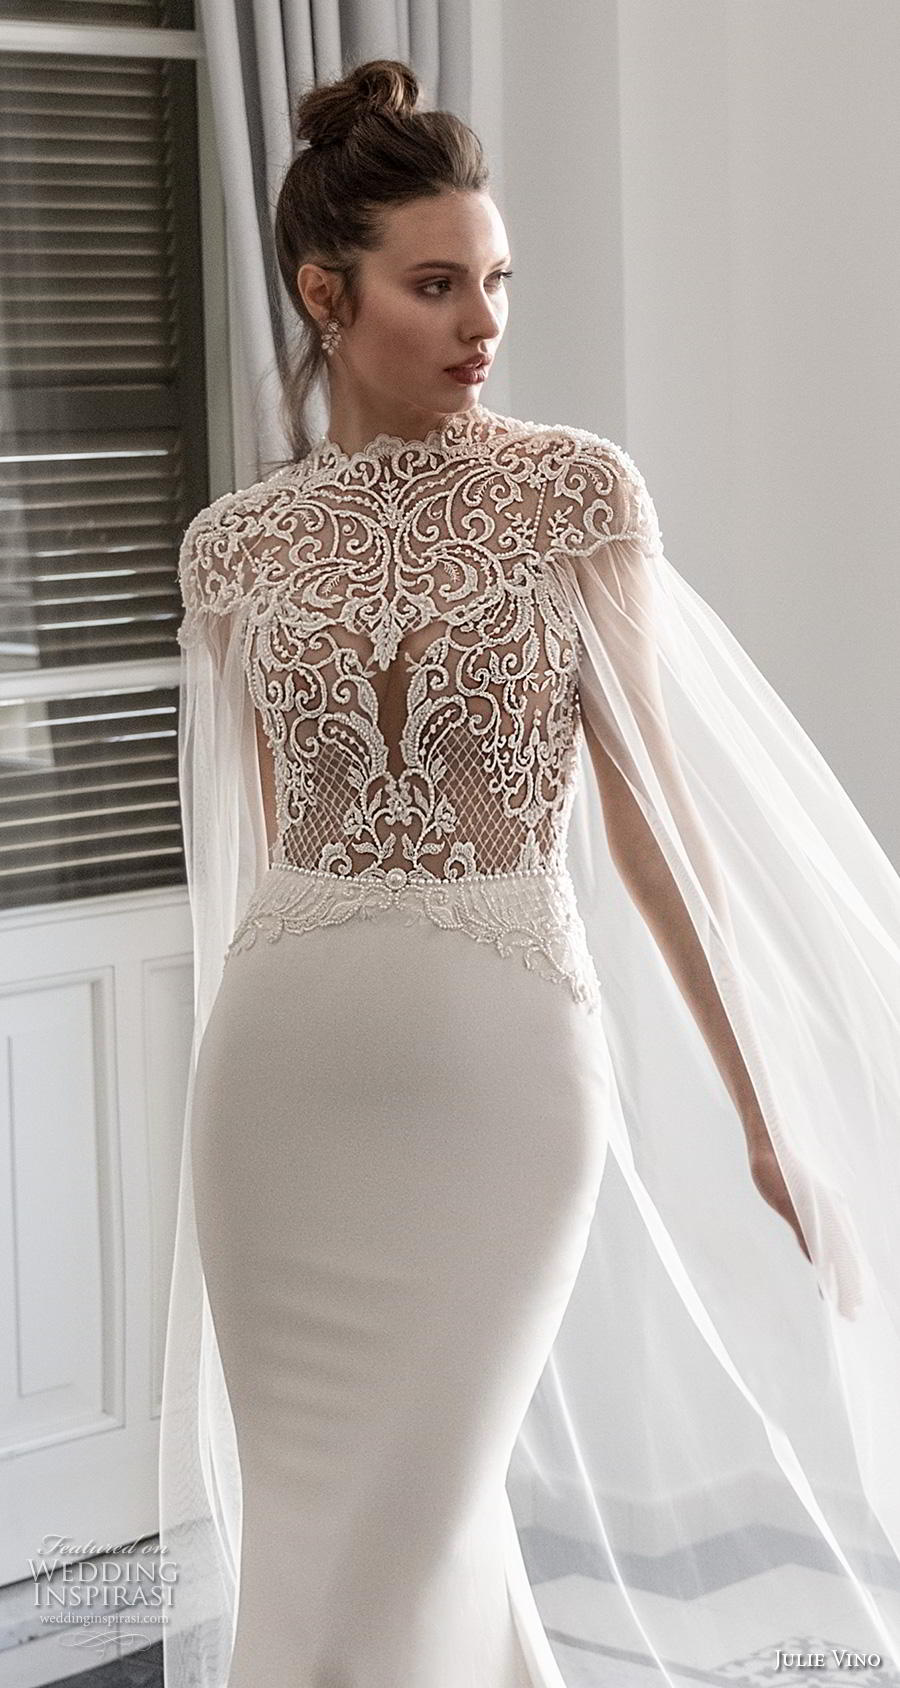 julie vino 2020 romanzo bridal cap sleeves high neck heavily embellished bodice elegant goddess fit and flare wedding dress with cape backless low back chapel train (3) zv